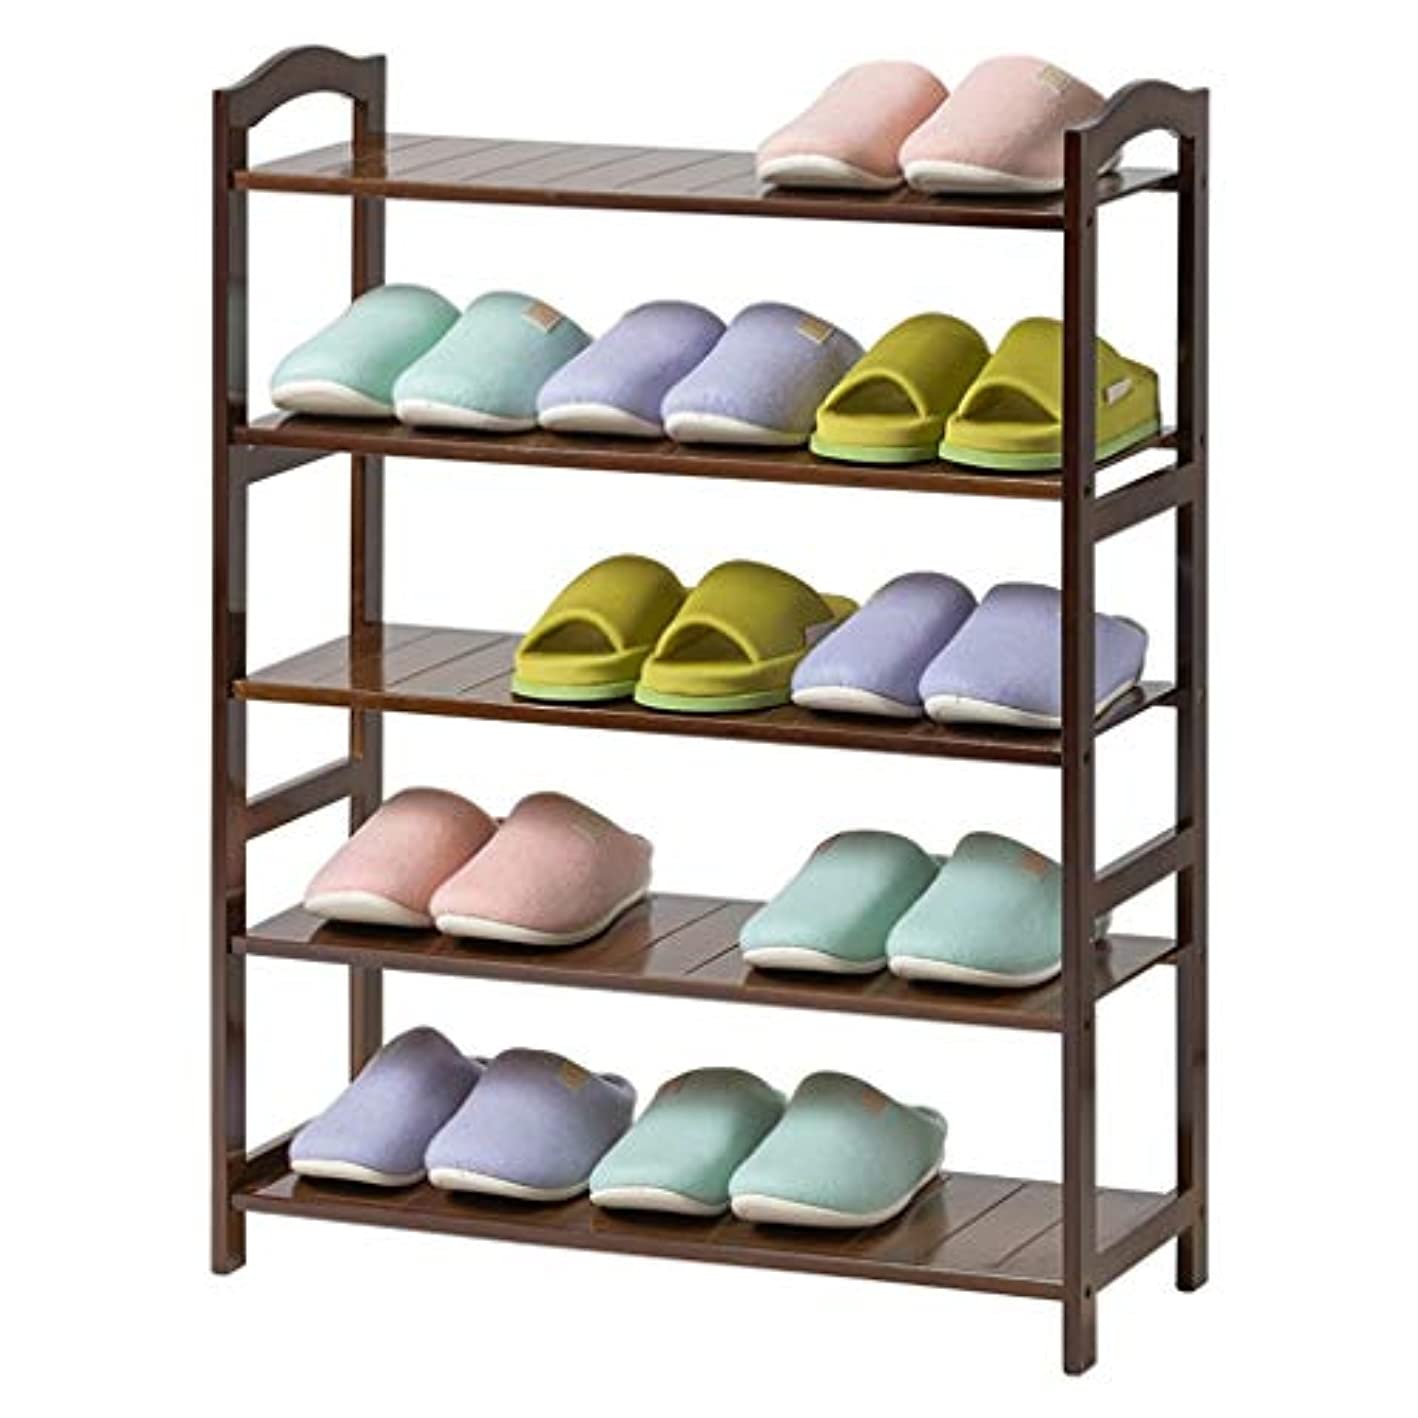 HTDZDX Bedroom Corridor Walnut Shoe Rack 6 Layers Save Space Storage Organizer Bamboo Shelf